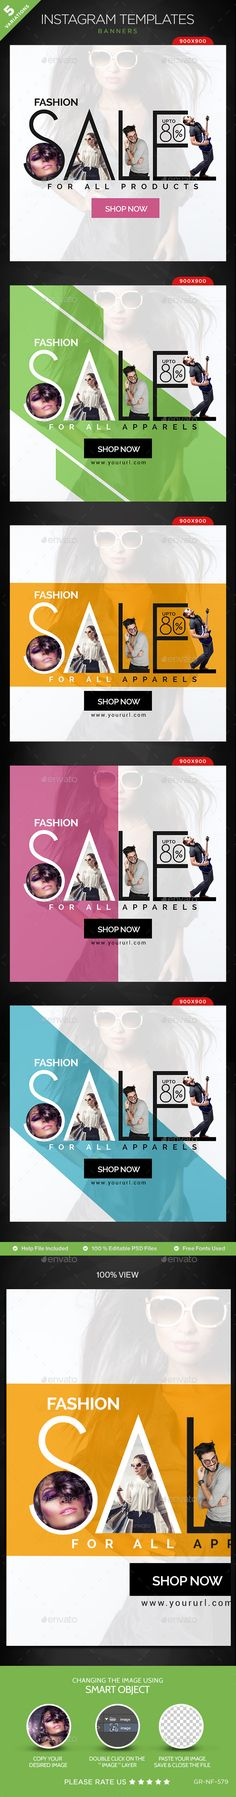 Sales Instagram Templates - 5 Designs - Banners & Ads Web Elements